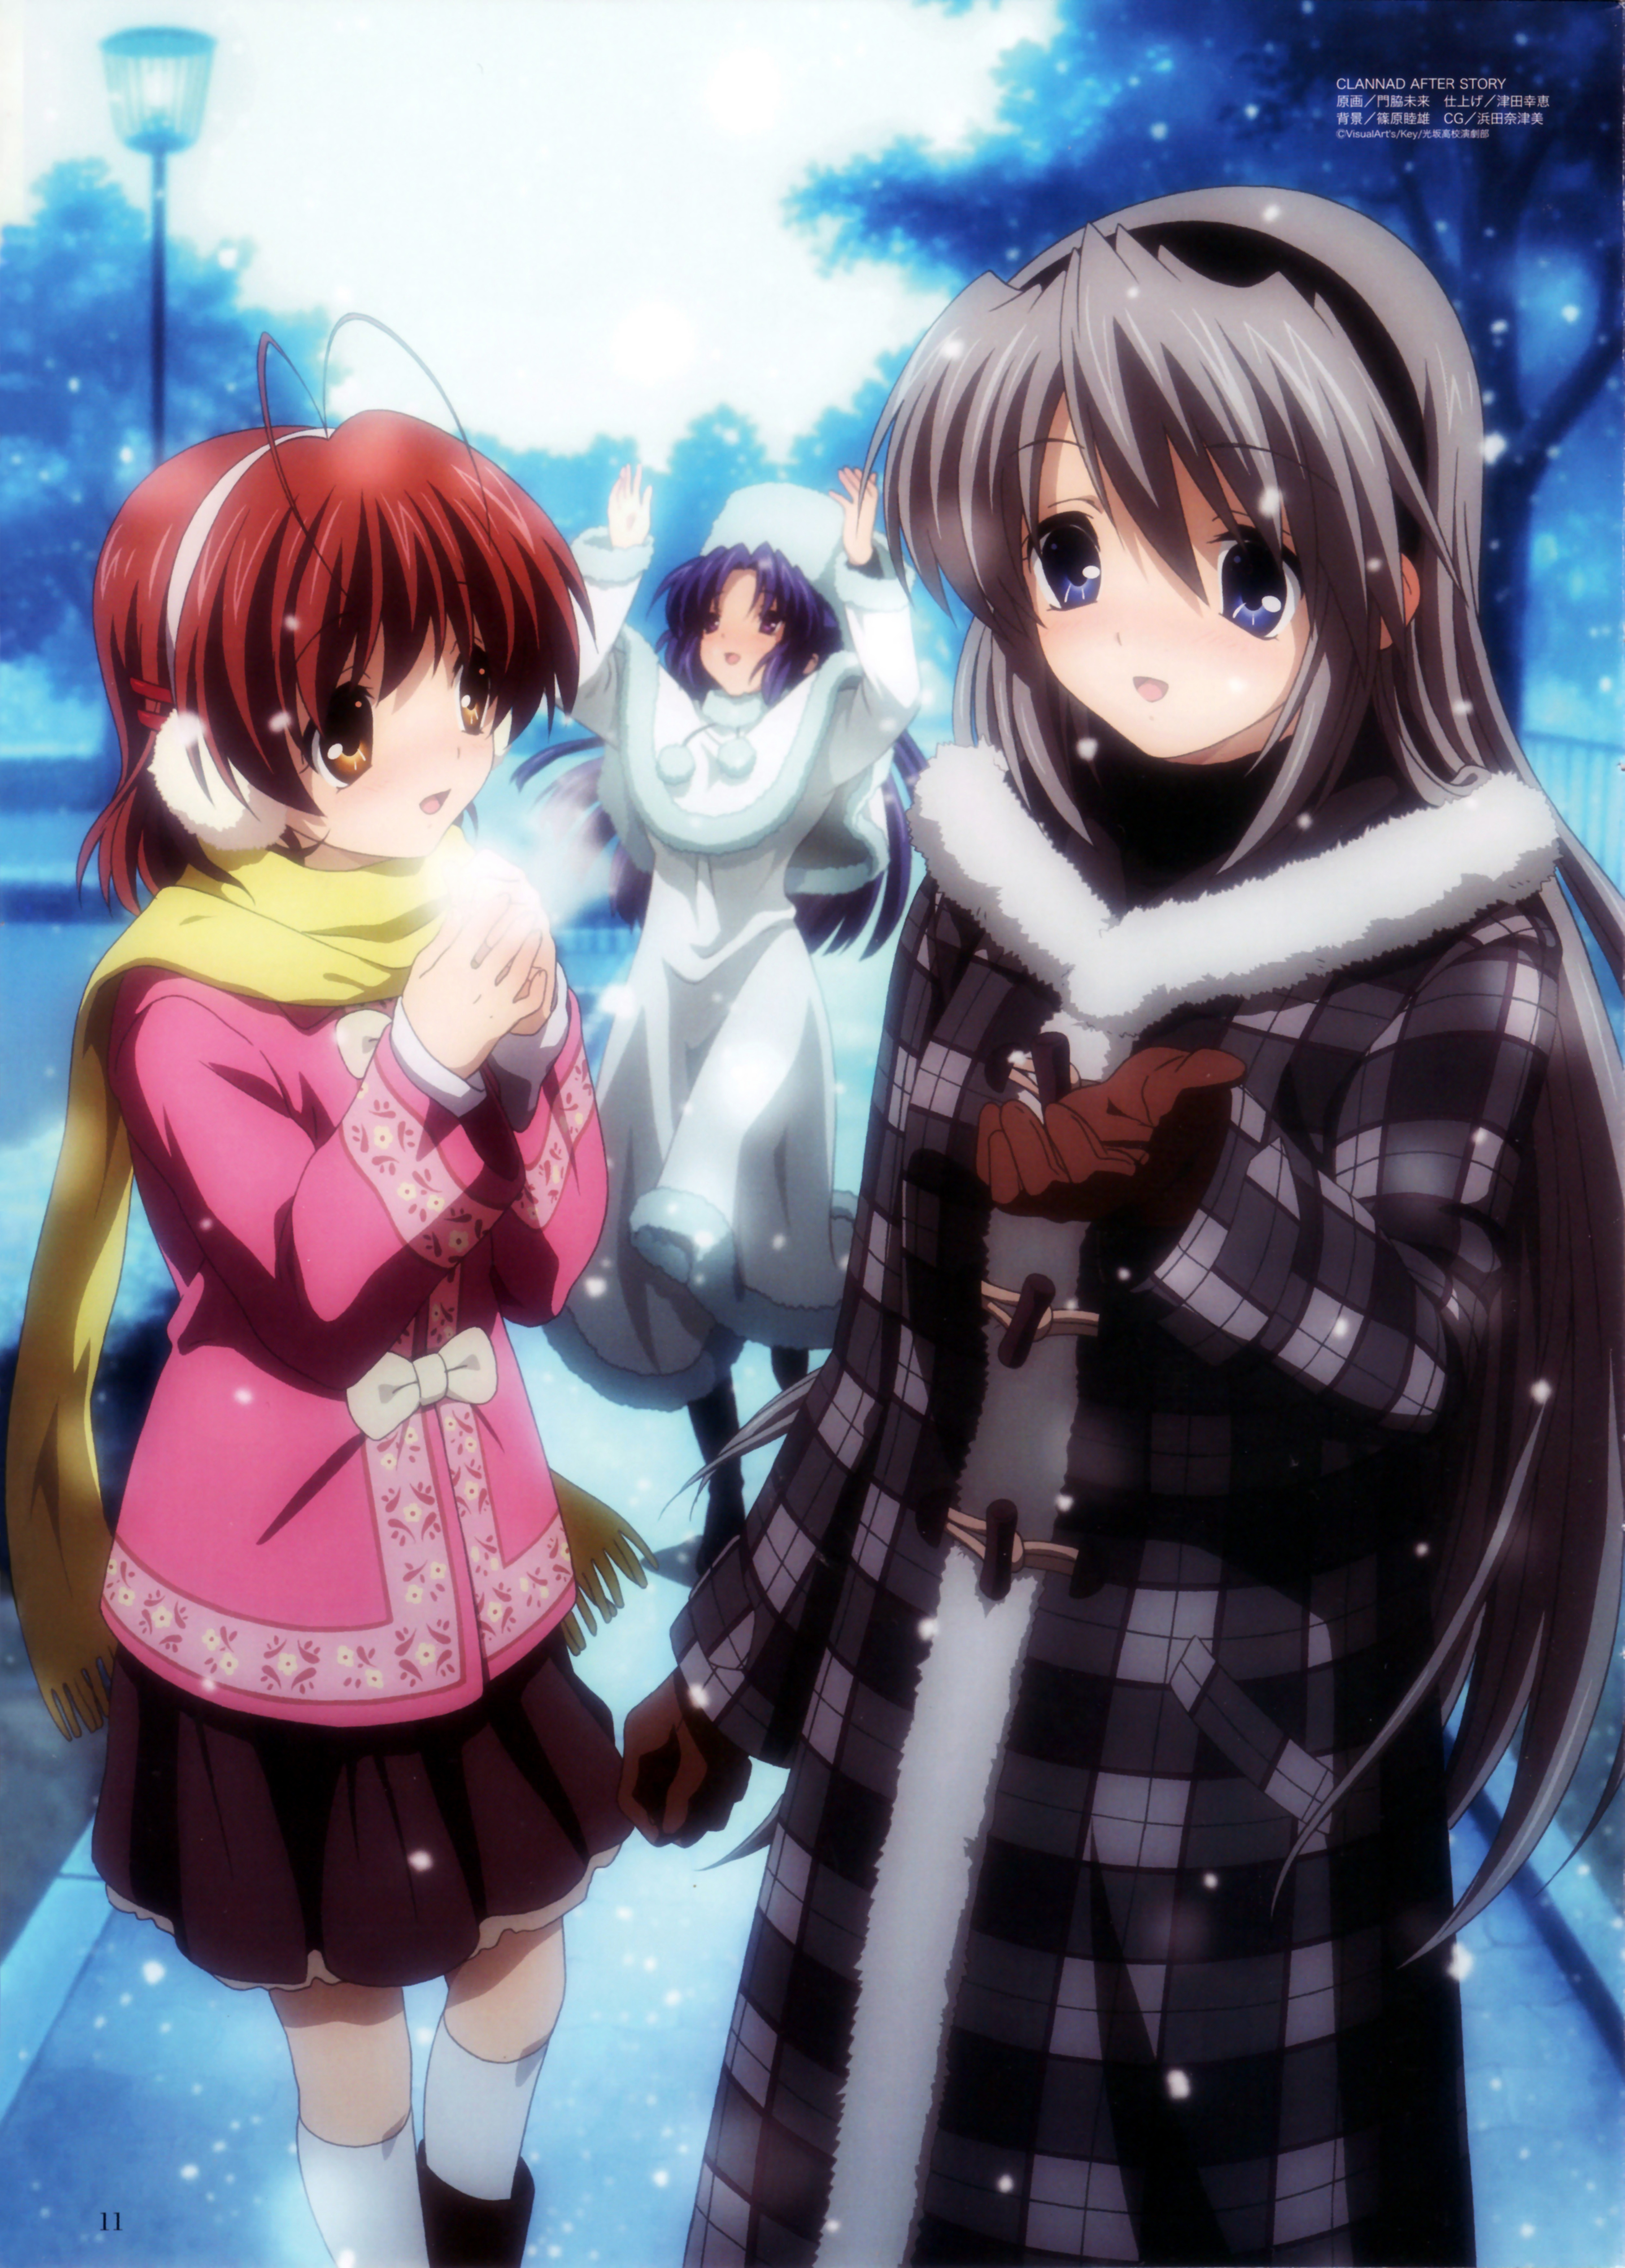 Clannad Mobile Wallpaper Zerochan Anime Image Board